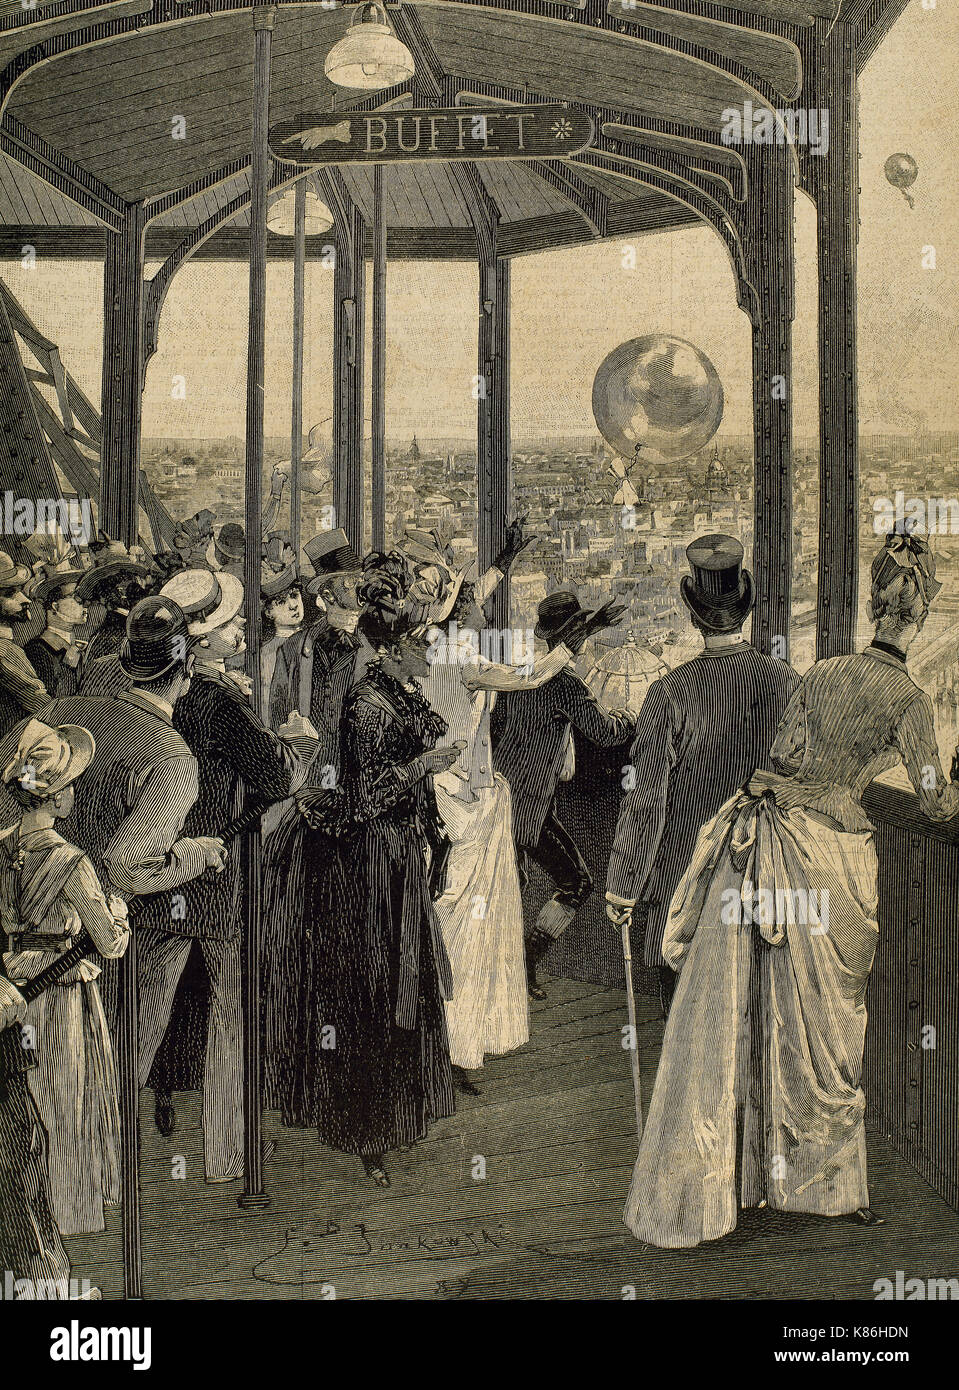 France. Paris. Universal Exhibition of 1889. Launch of postal balloons from the second platform of the Eiffel Tower. Engraving. - Stock Image